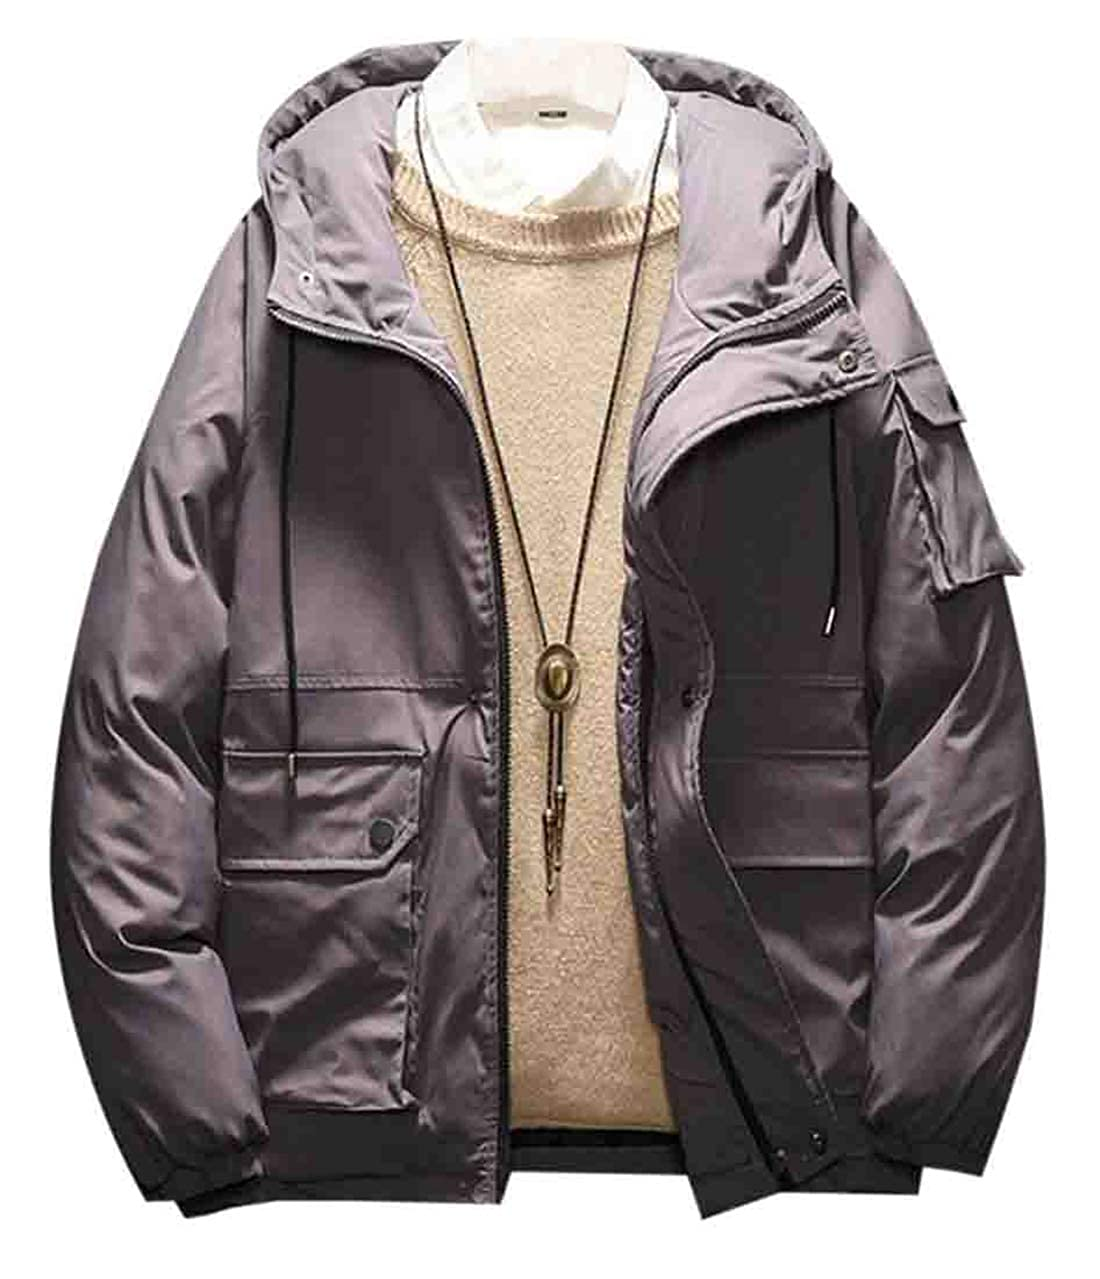 YYear Men Fashion Thicken Winter Drawstring Quilted Paddeduflage Hooded Pockets Puffer Jacket